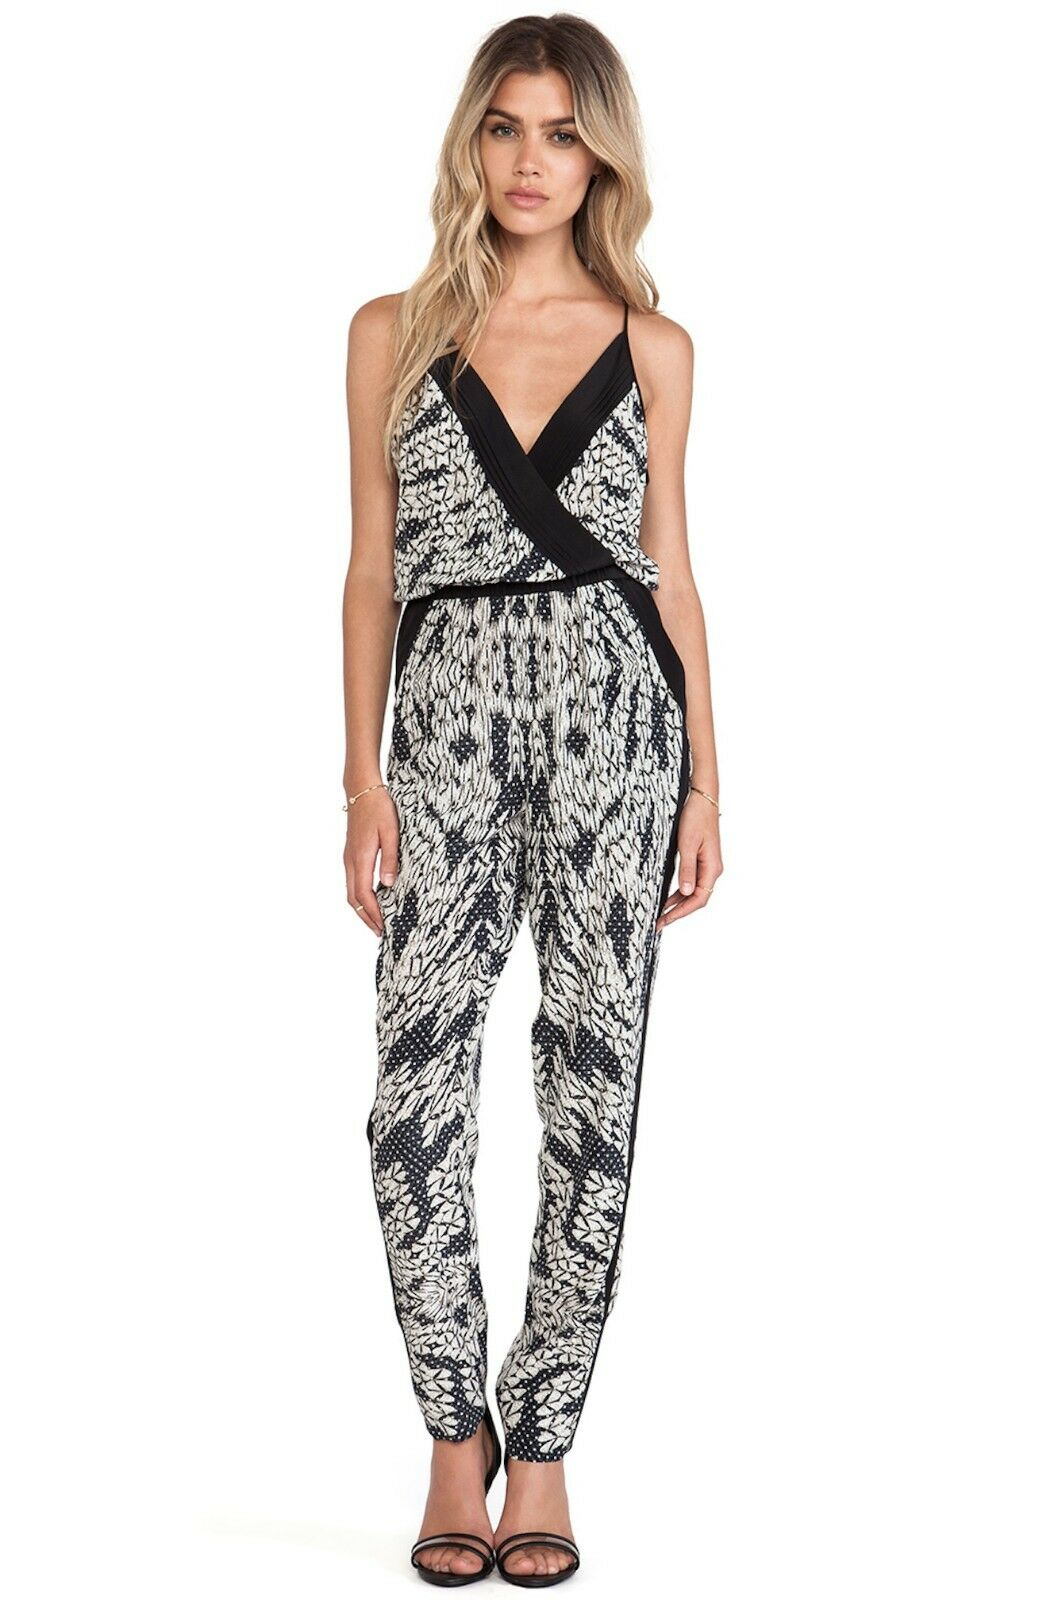 DVF Diane von Furstenberg Shany Panther Lace-Print Jumpsuit Sz 10  445 NWT